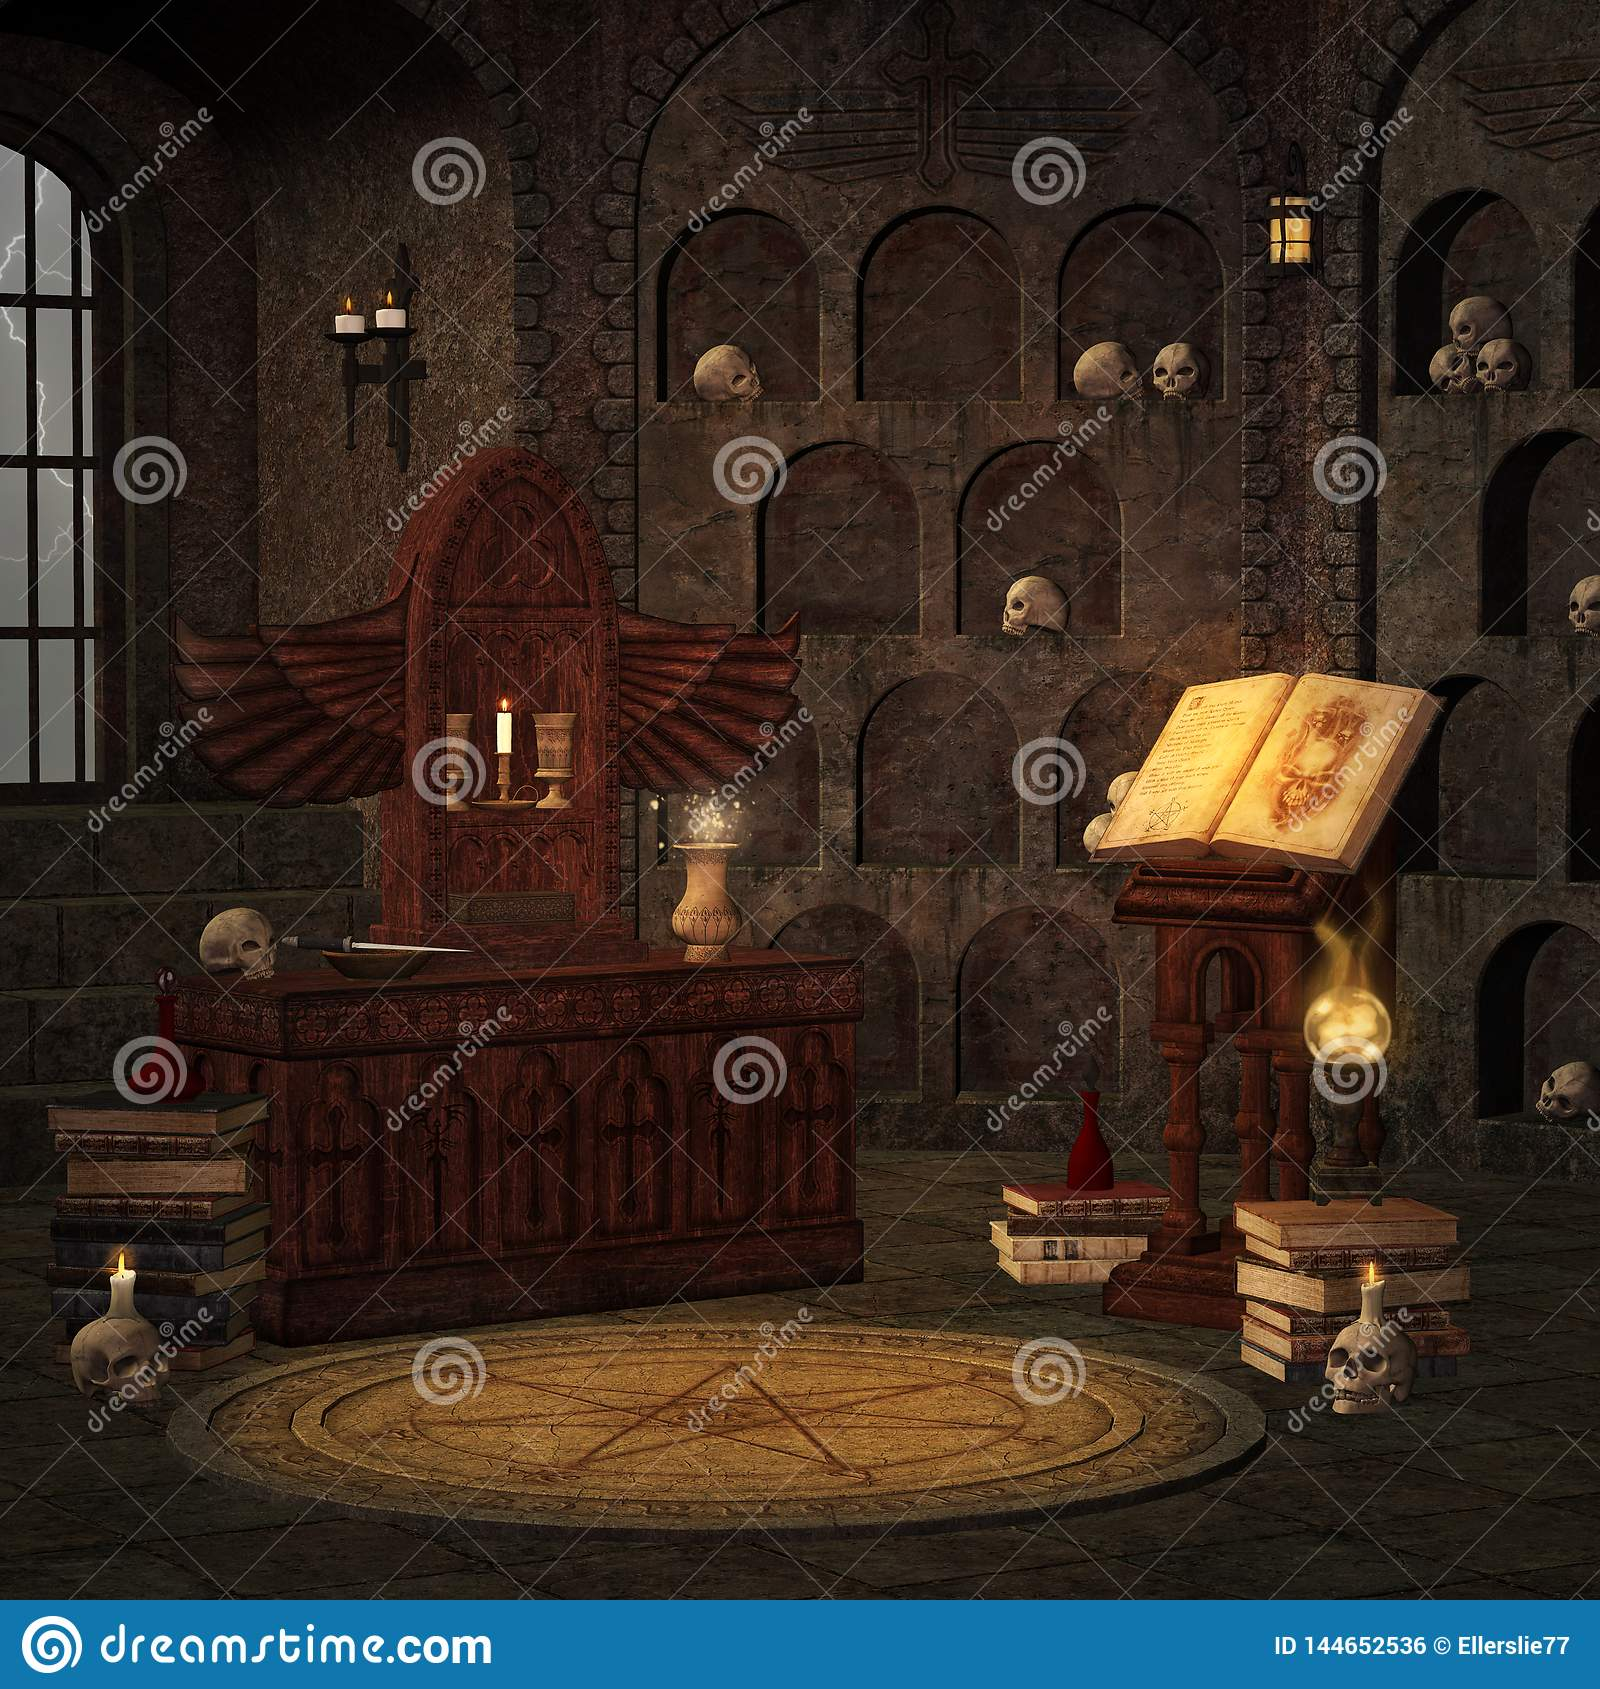 Black Magic Room In A Spooky Crypt Stock Illustration - Illustration of ball, backgrounds: 144652536